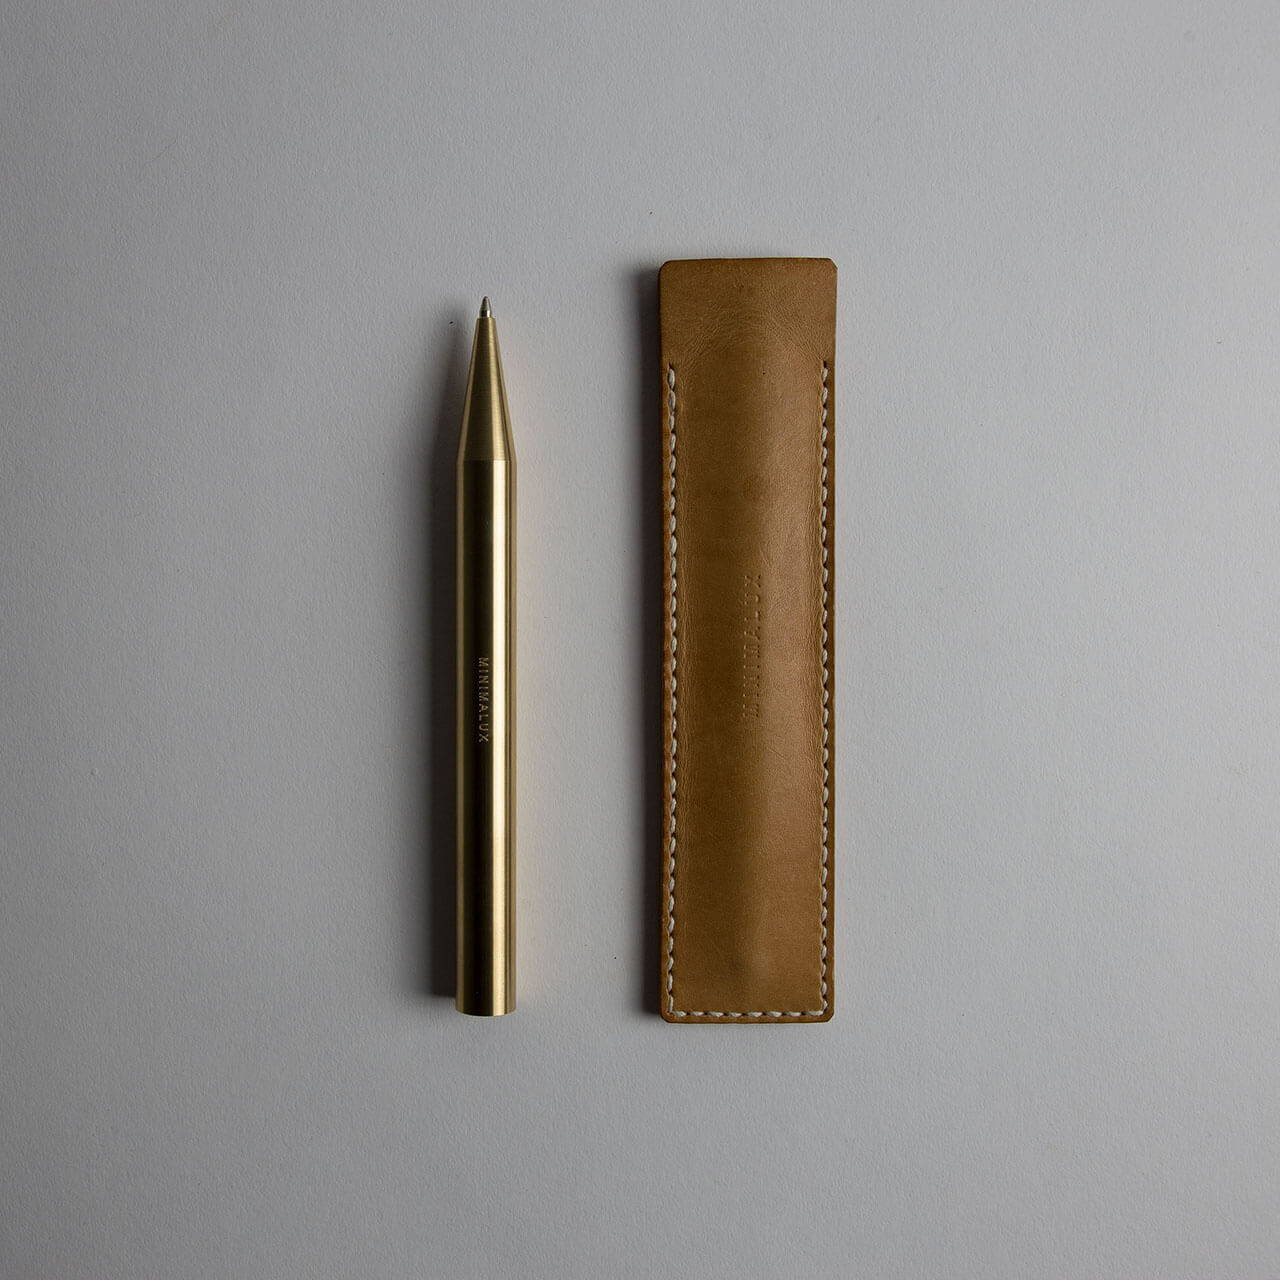 Brass Ballpoint Pen with Leather Pen Sleeve